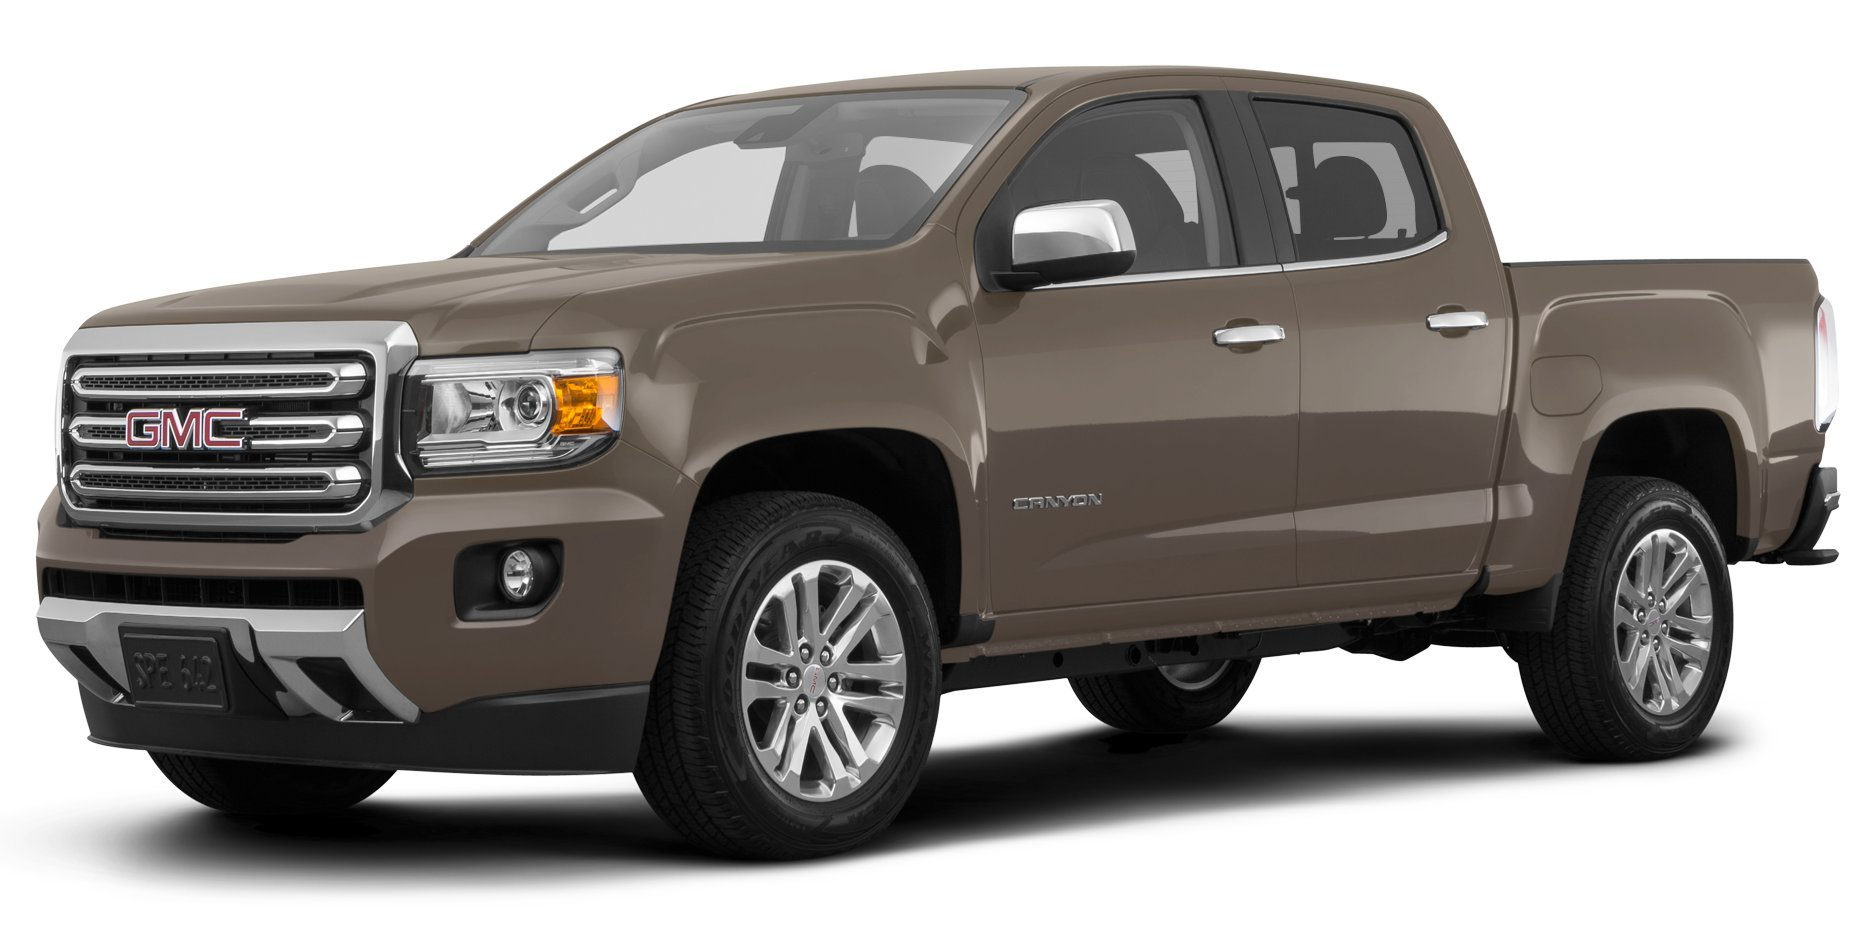 2016 toyota tacoma reviews images and specs. Black Bedroom Furniture Sets. Home Design Ideas